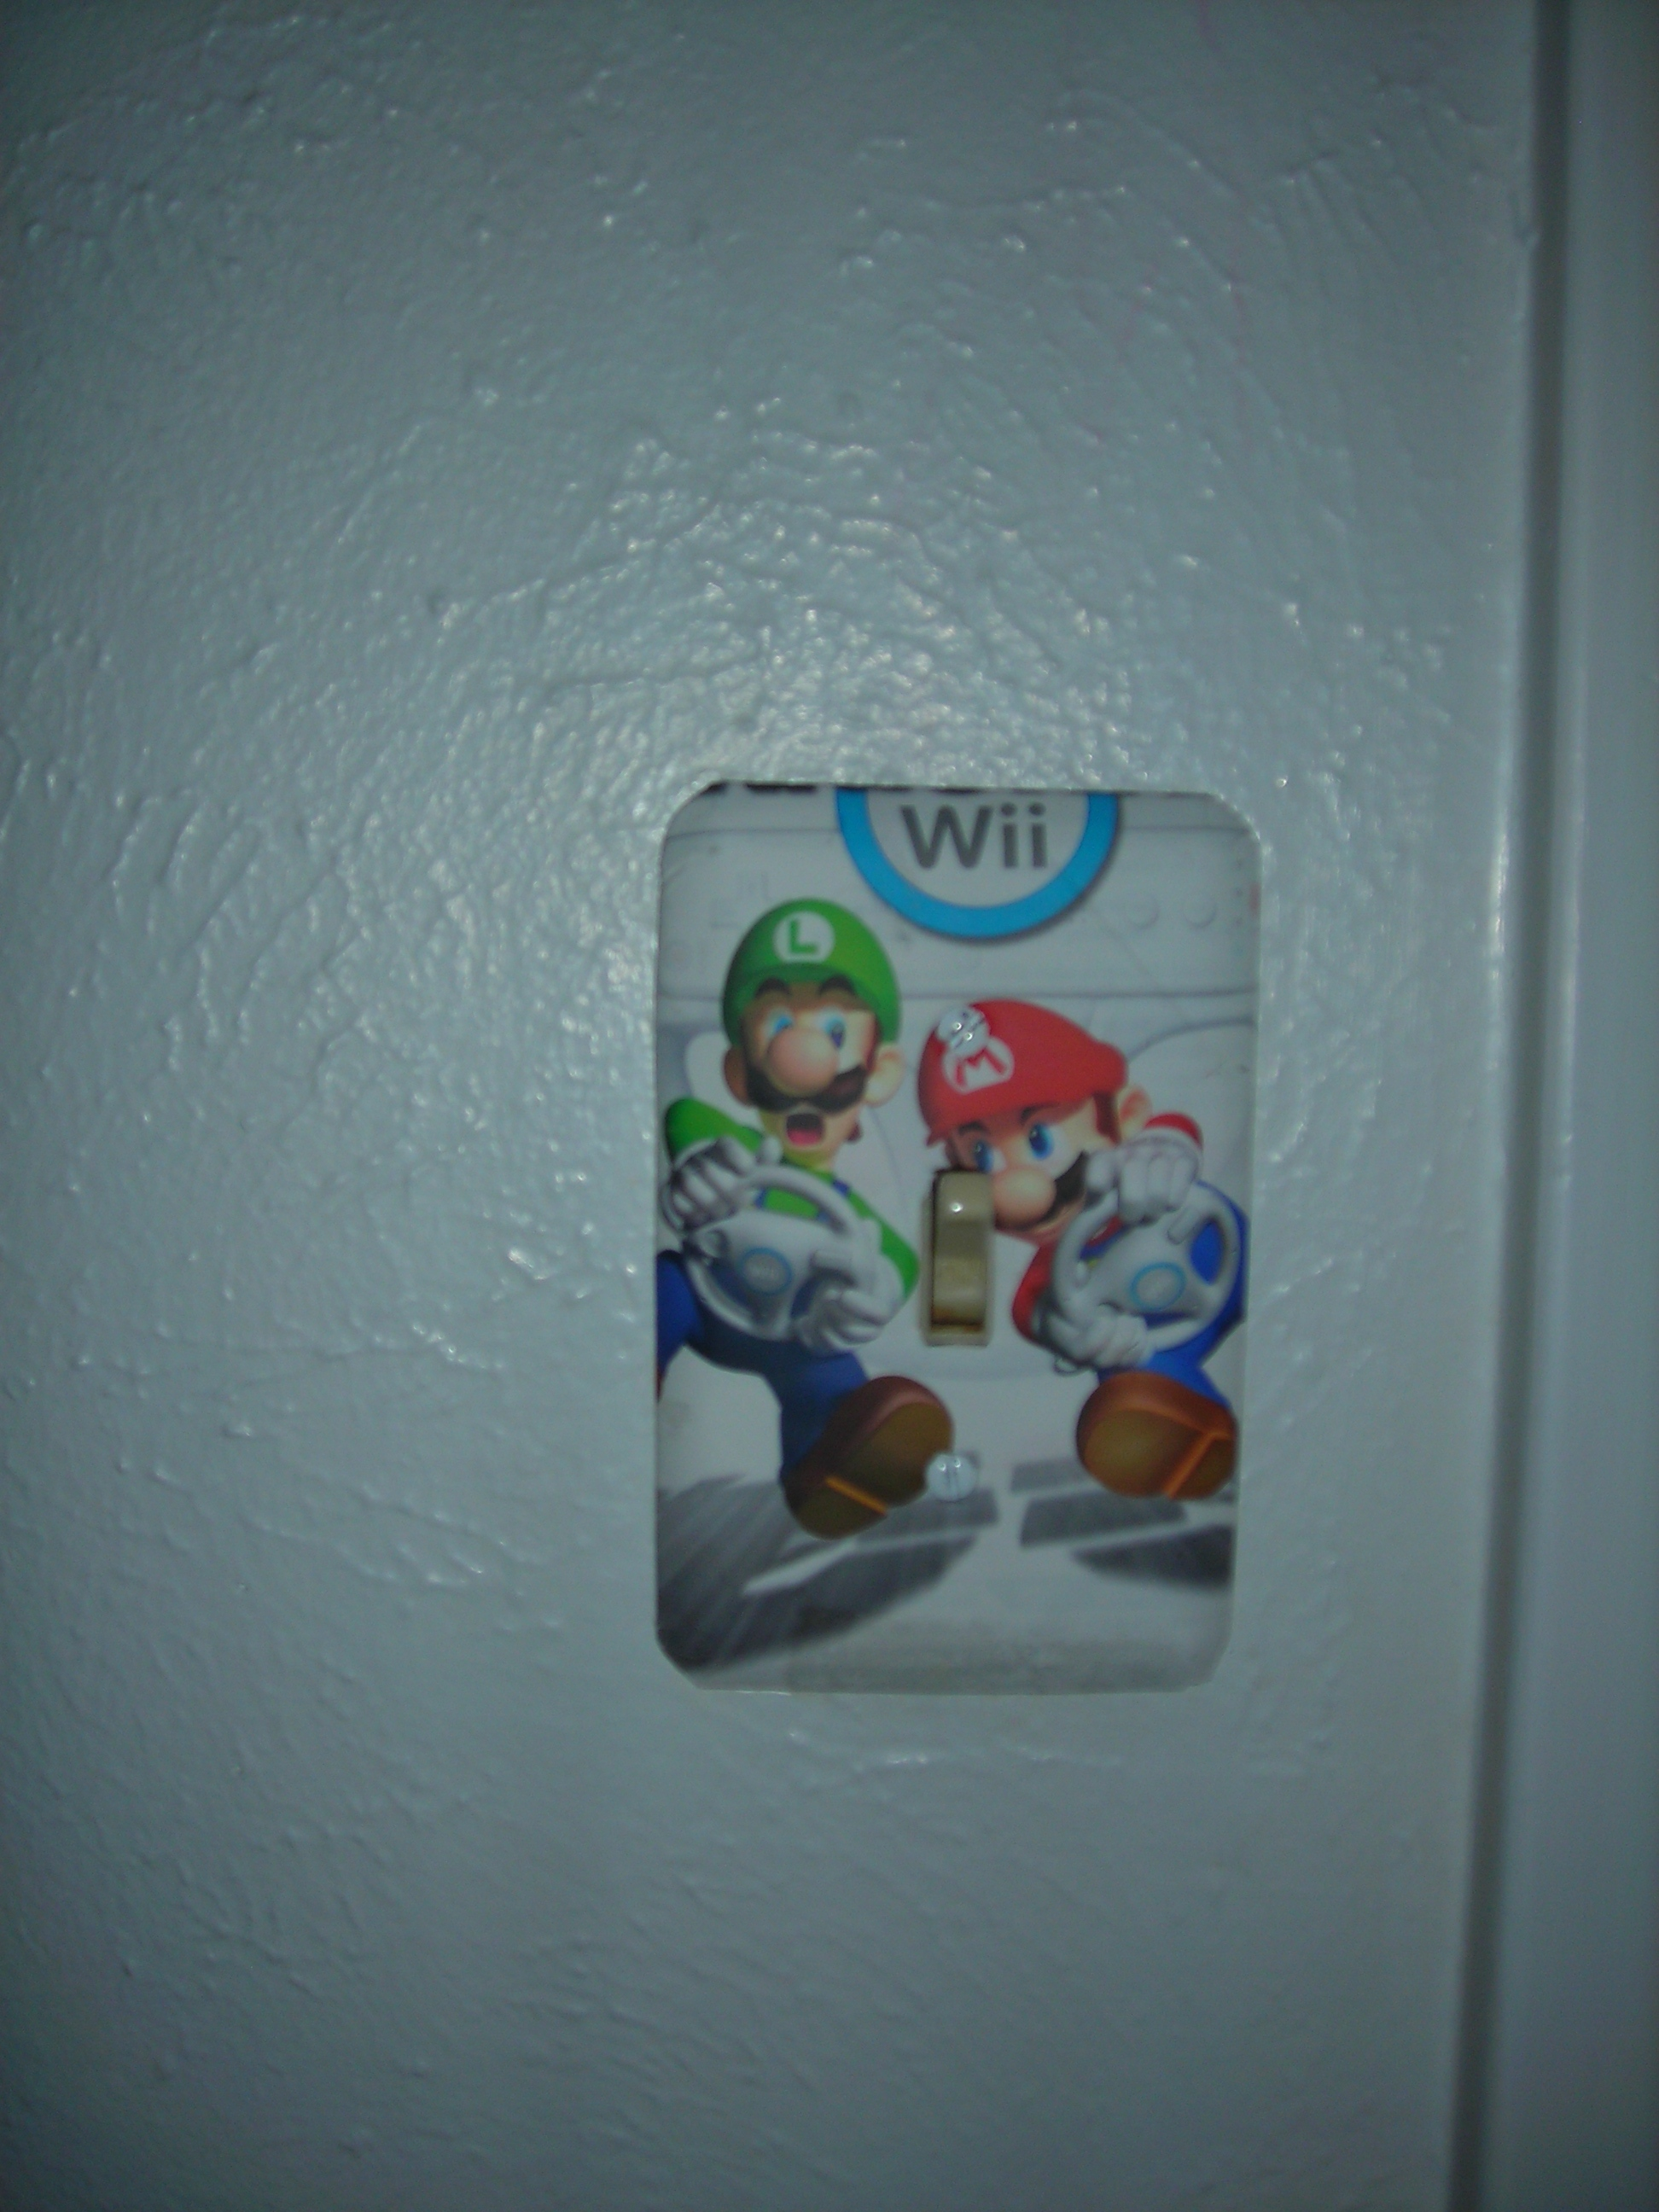 okay, i covered the light switch with a mario and luigi pic